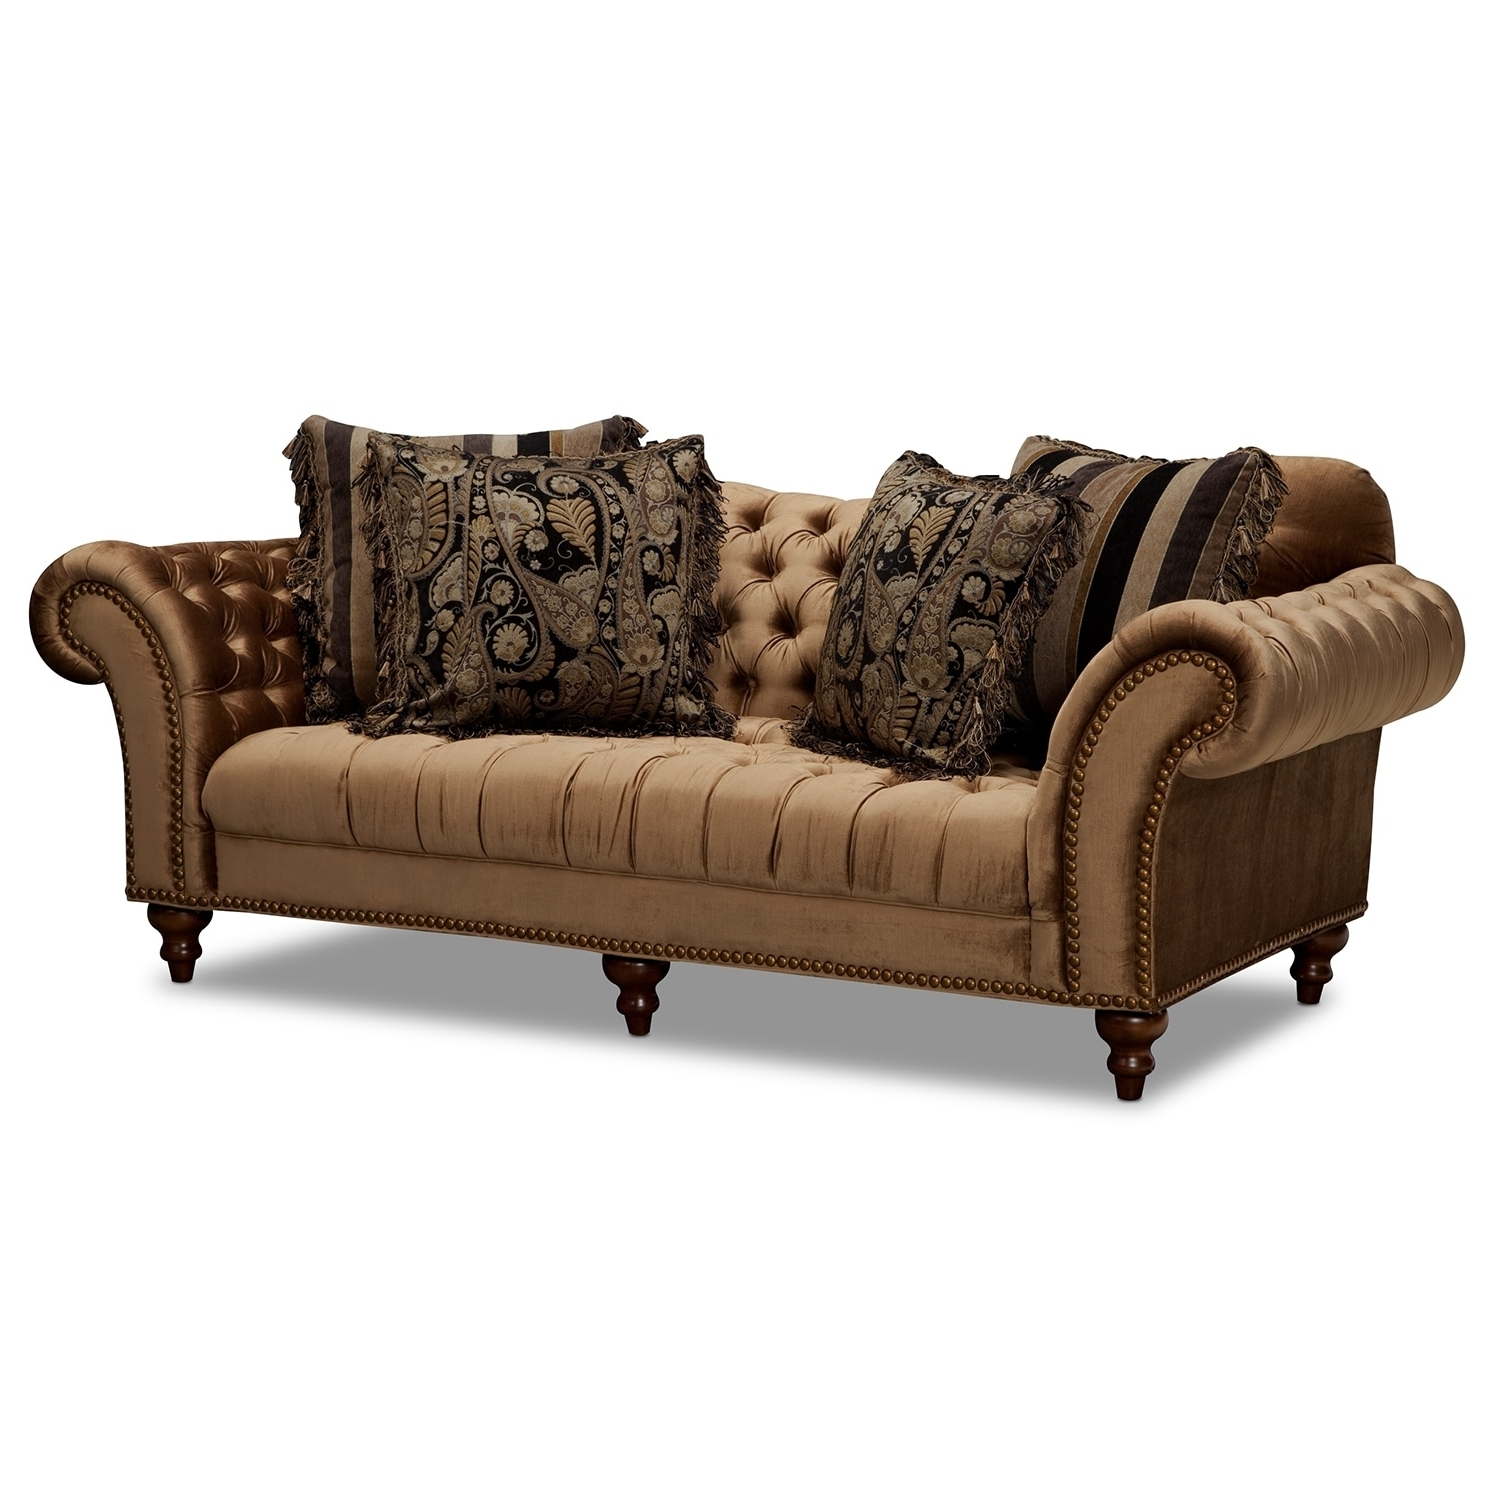 Value City Furniture And Mattresses with Trendy Value City Sofas